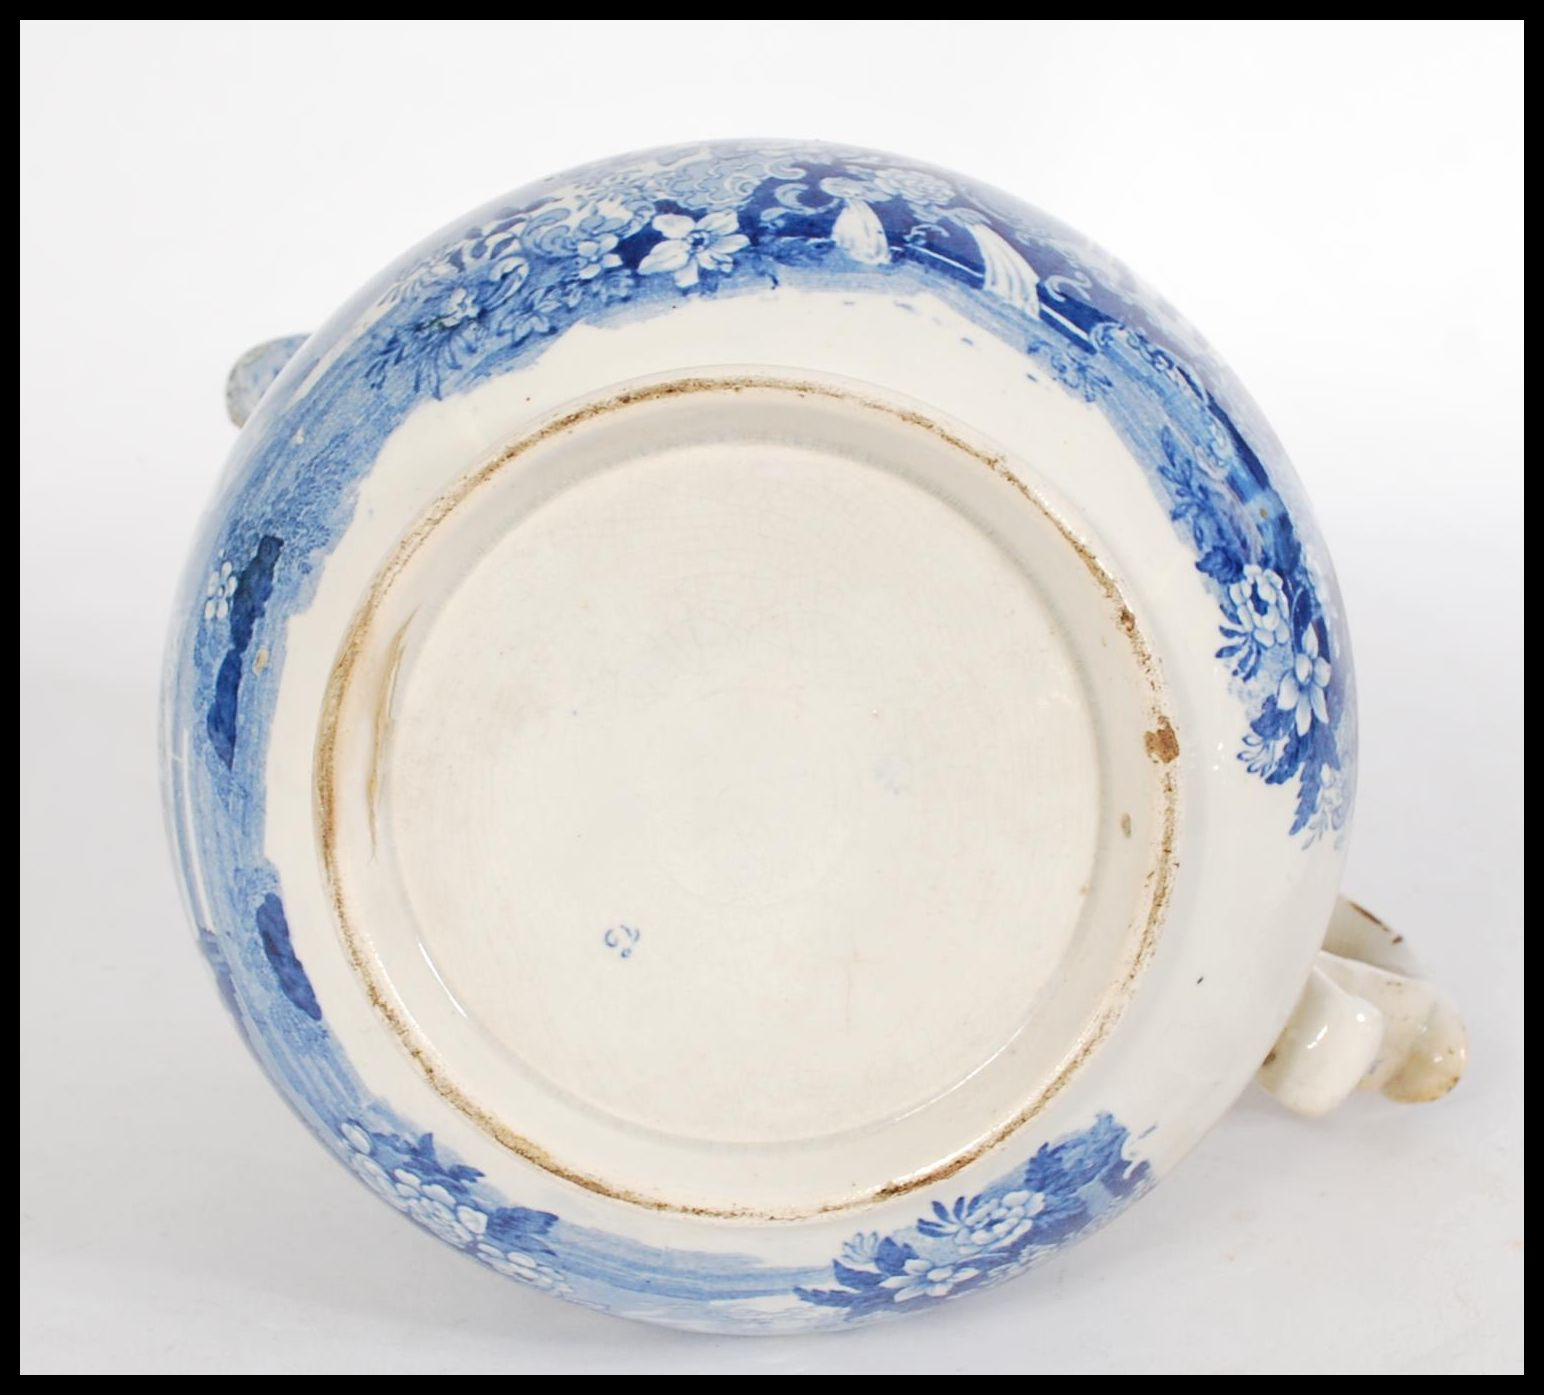 Lot 17 - A 19th century Staffordshire Pearlware jug having a scrolled shaped handle with a blue and white